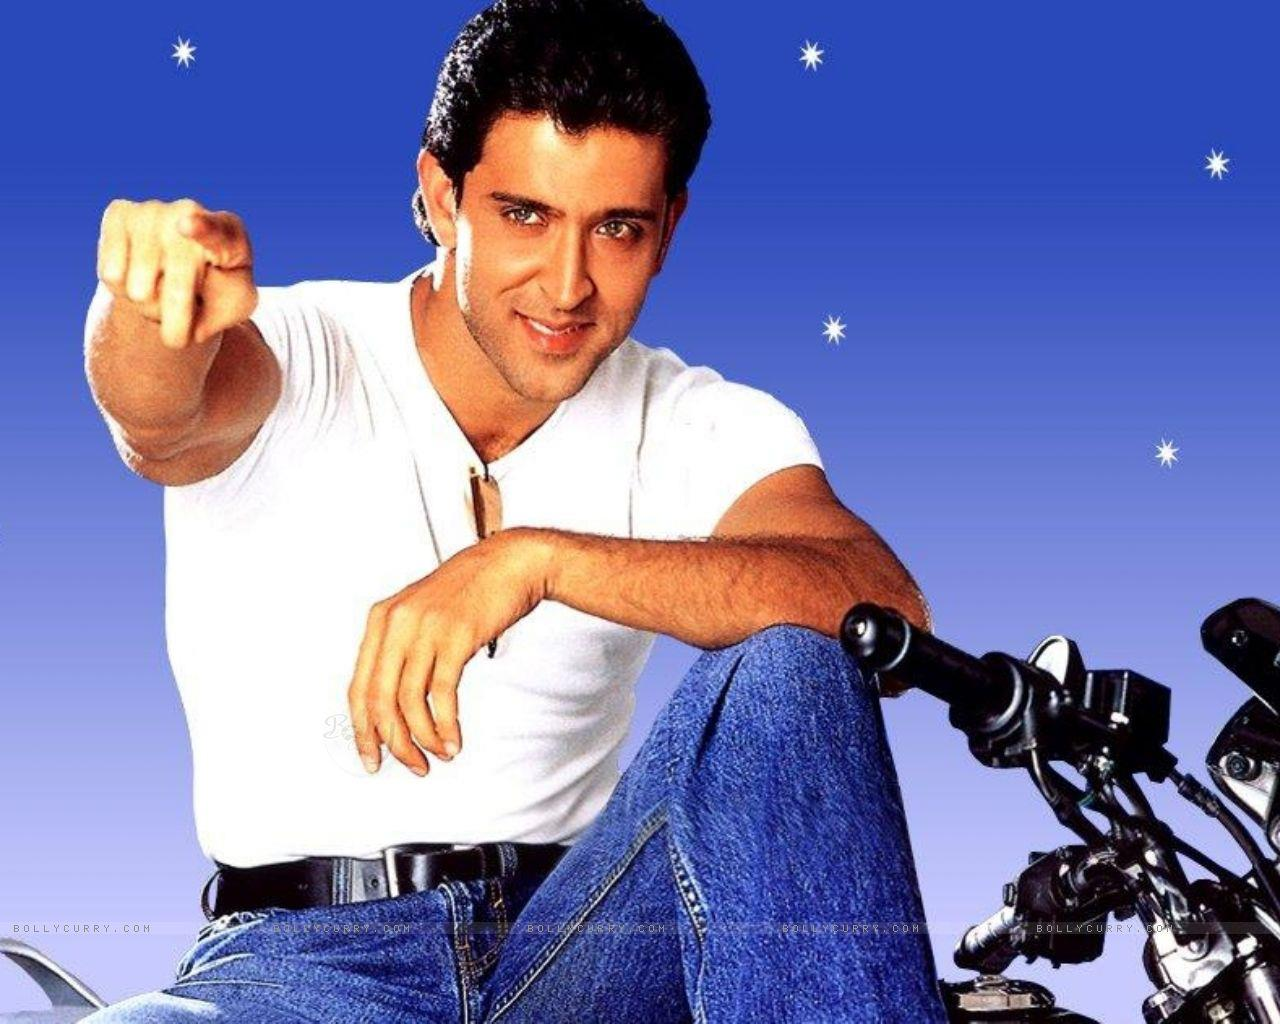 idha hrithikchan: ʚϊɞ hrithik roshan photo collection (my collection